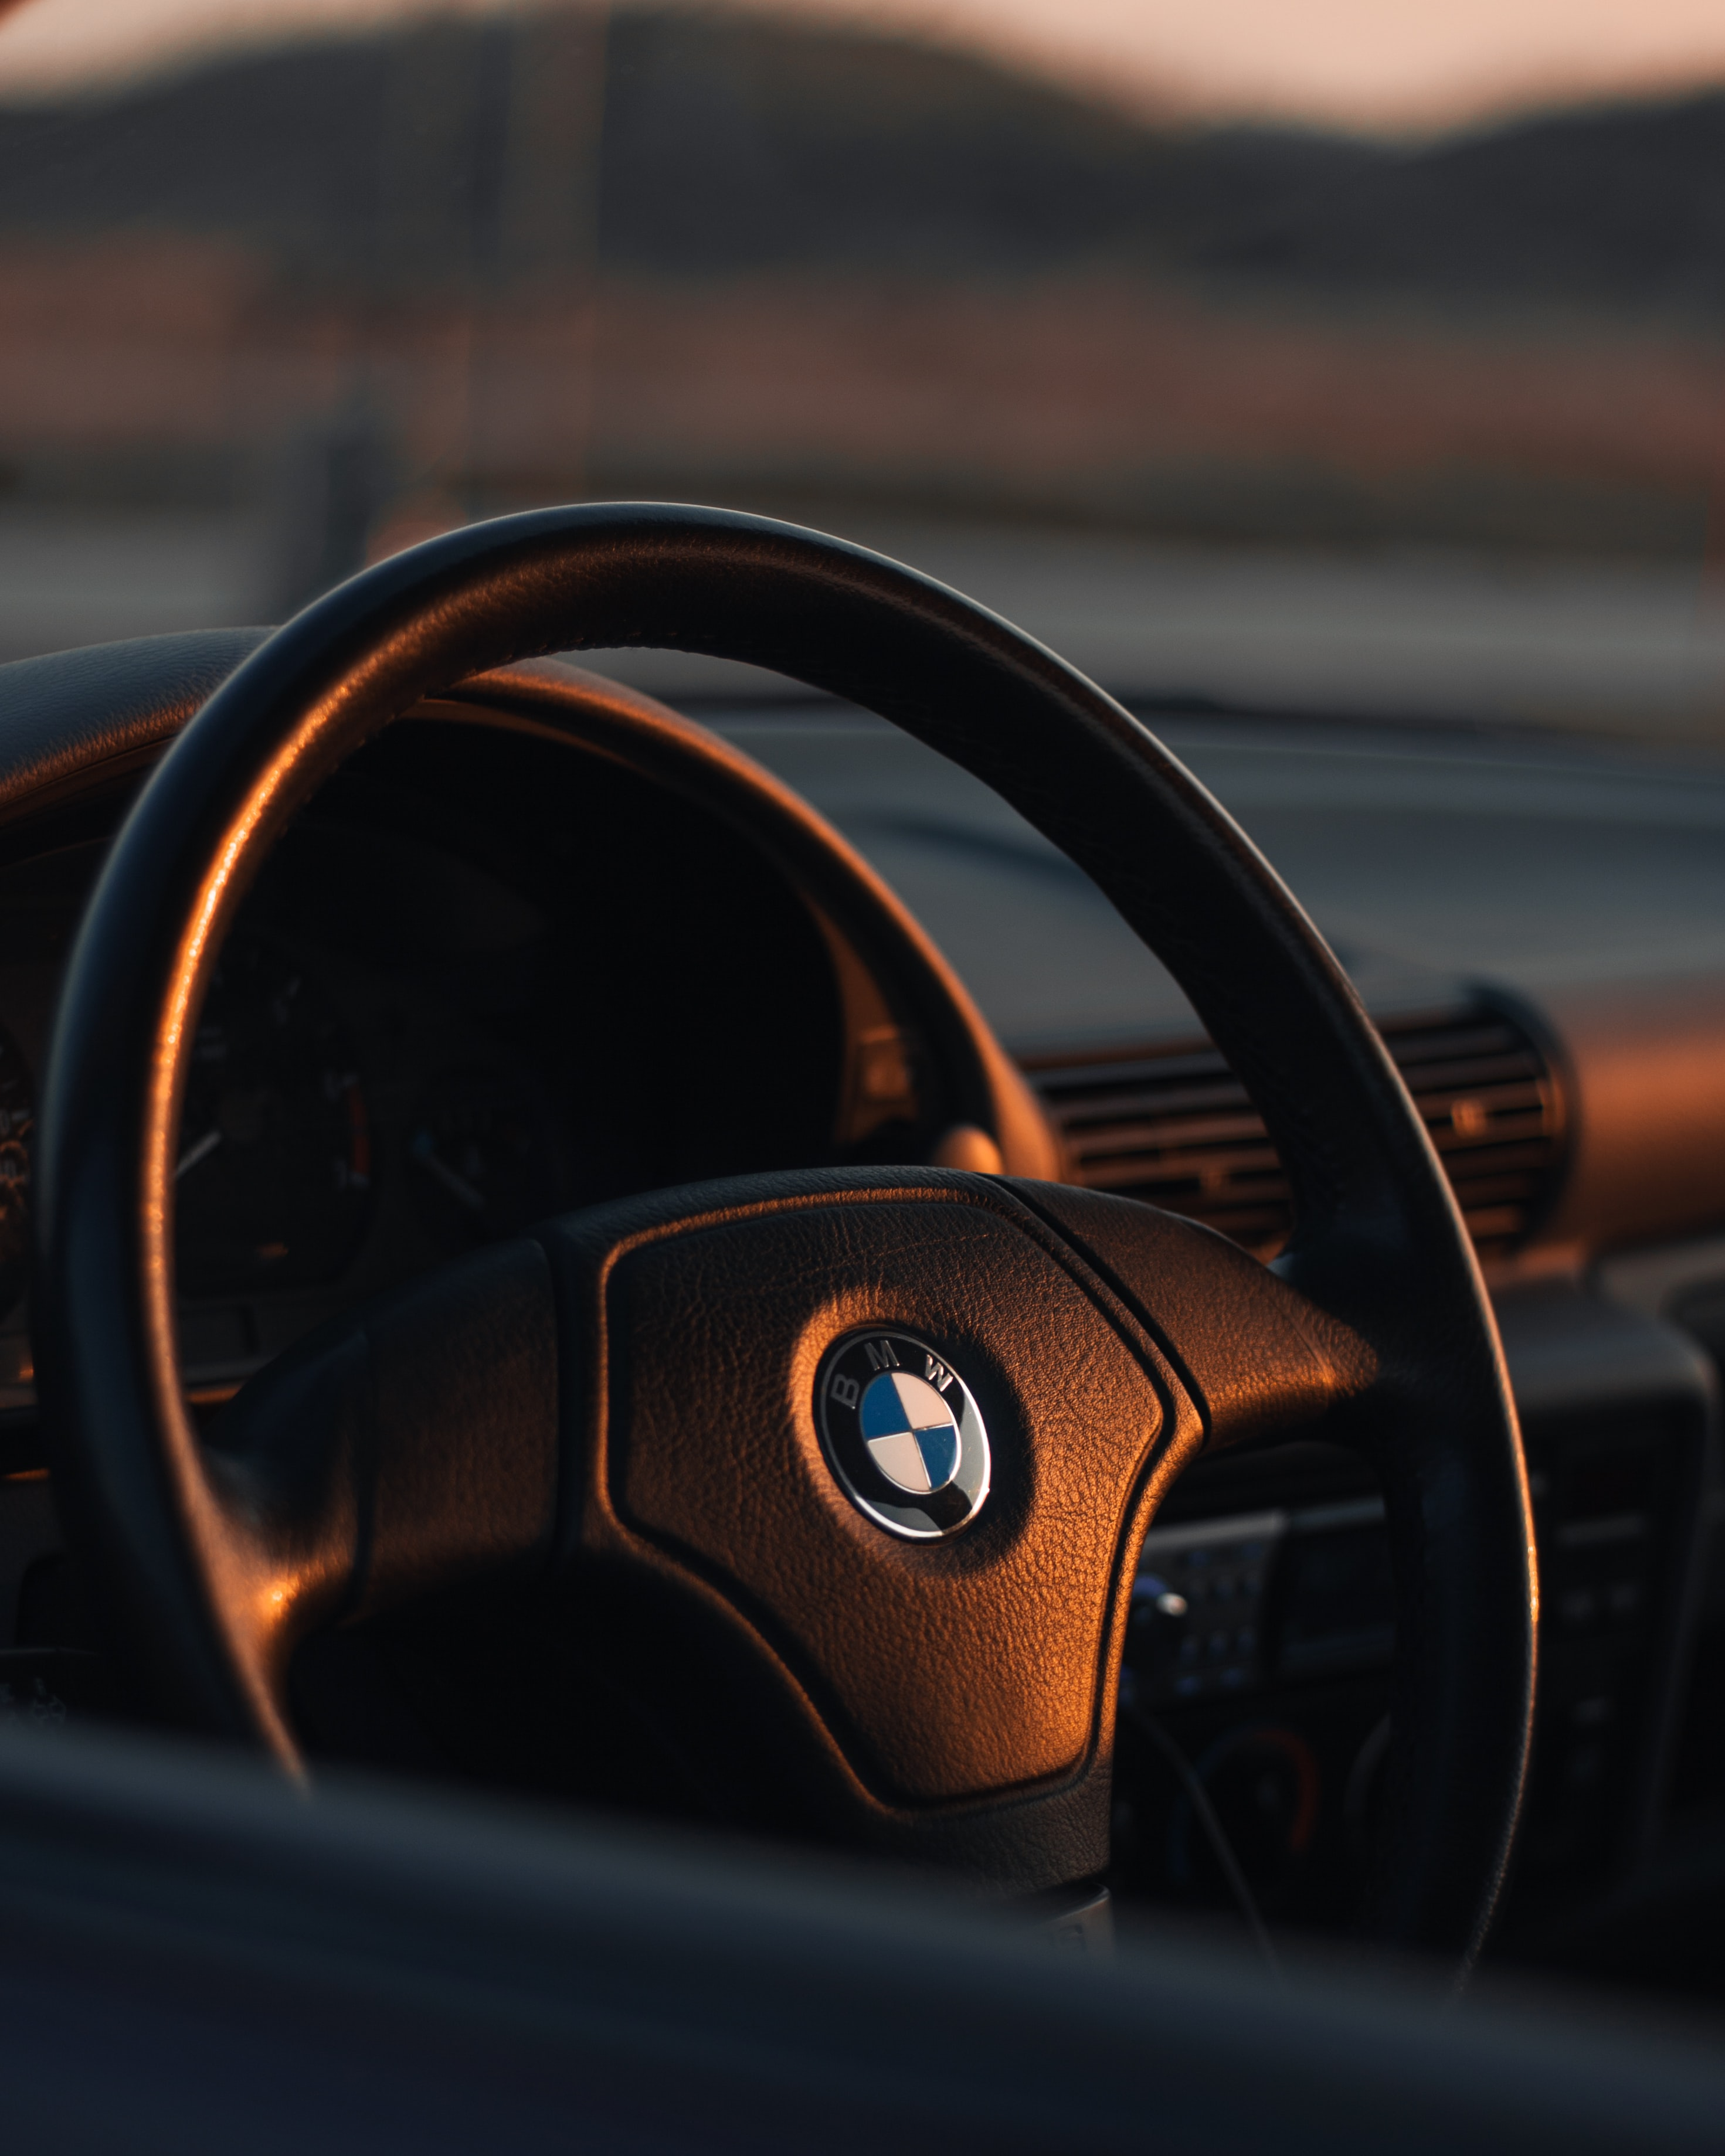 Bmw Steering Wheel Pictures Download Free Images On Unsplash